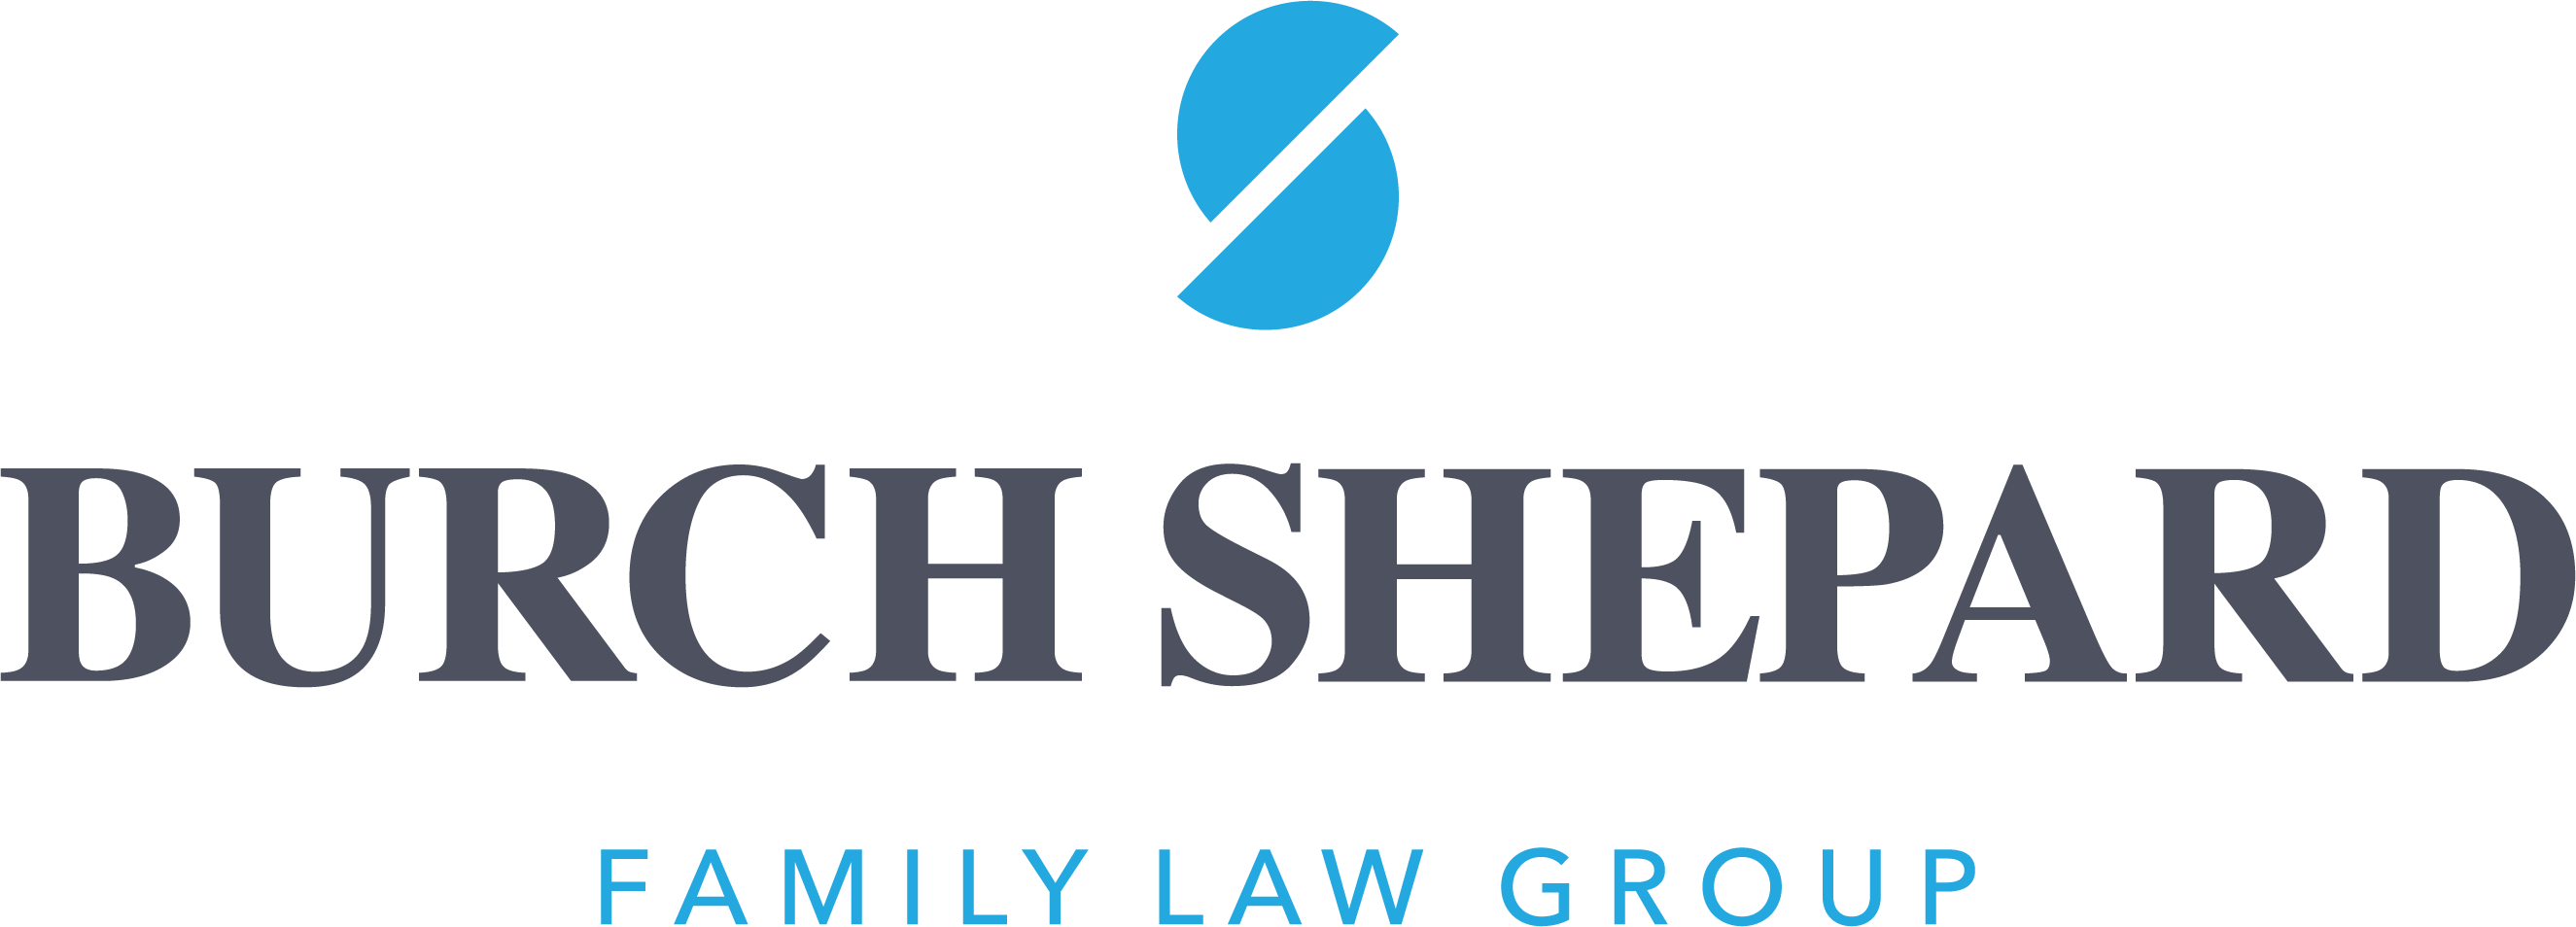 Burch Shepard Family Law Group